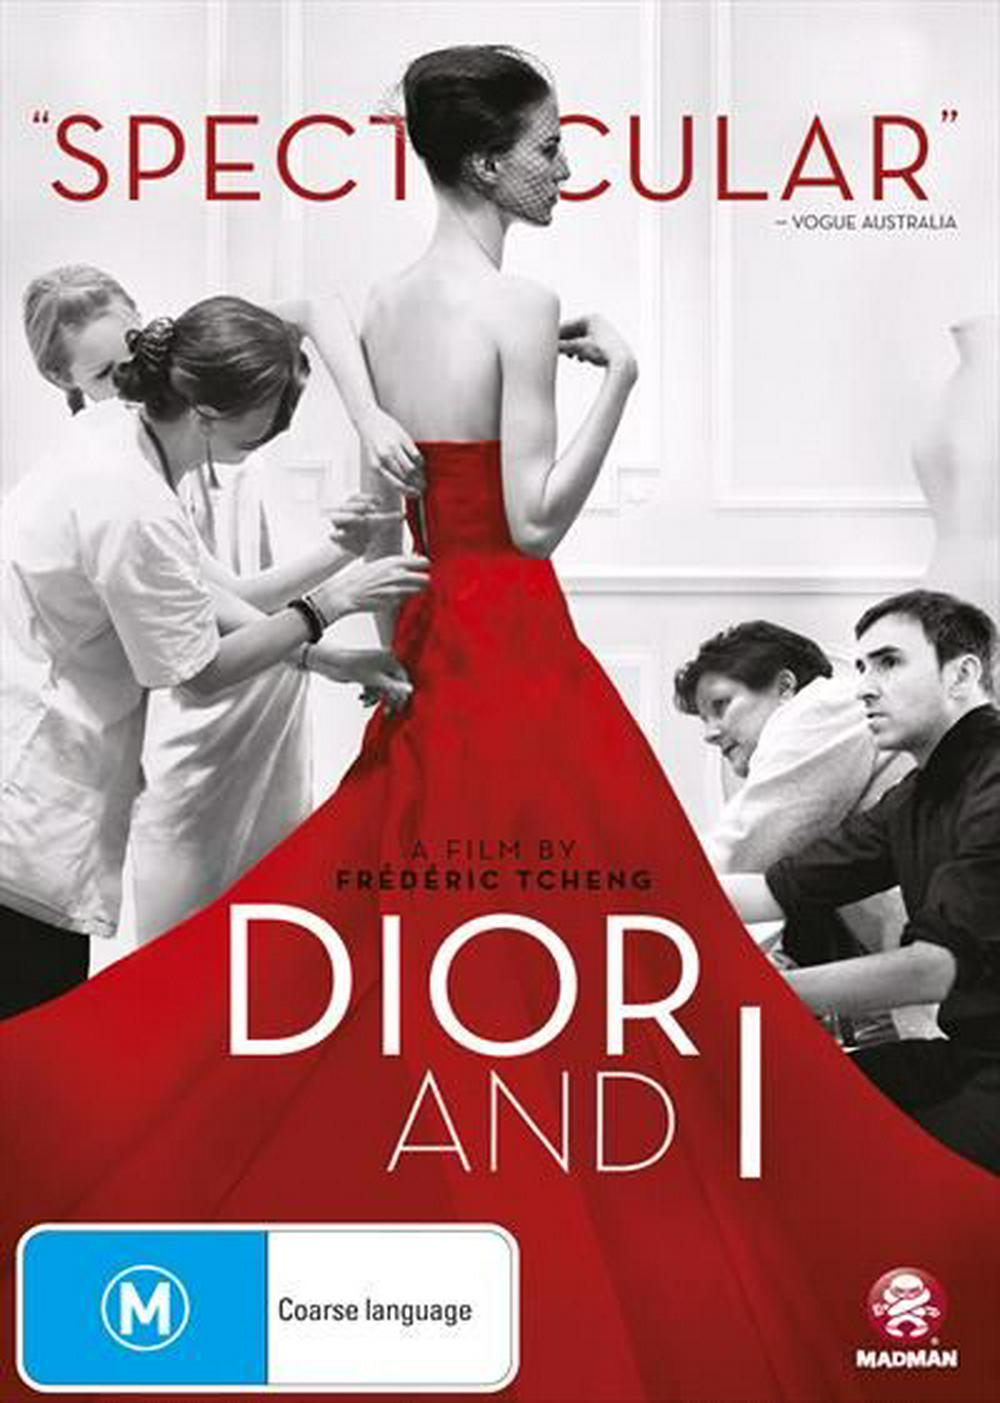 Dior And I by Sidney Toledano,Raf Simons,Anna Wintour,Marion Cotillard,Frederic Tcheng, ISBN: 9322225206892